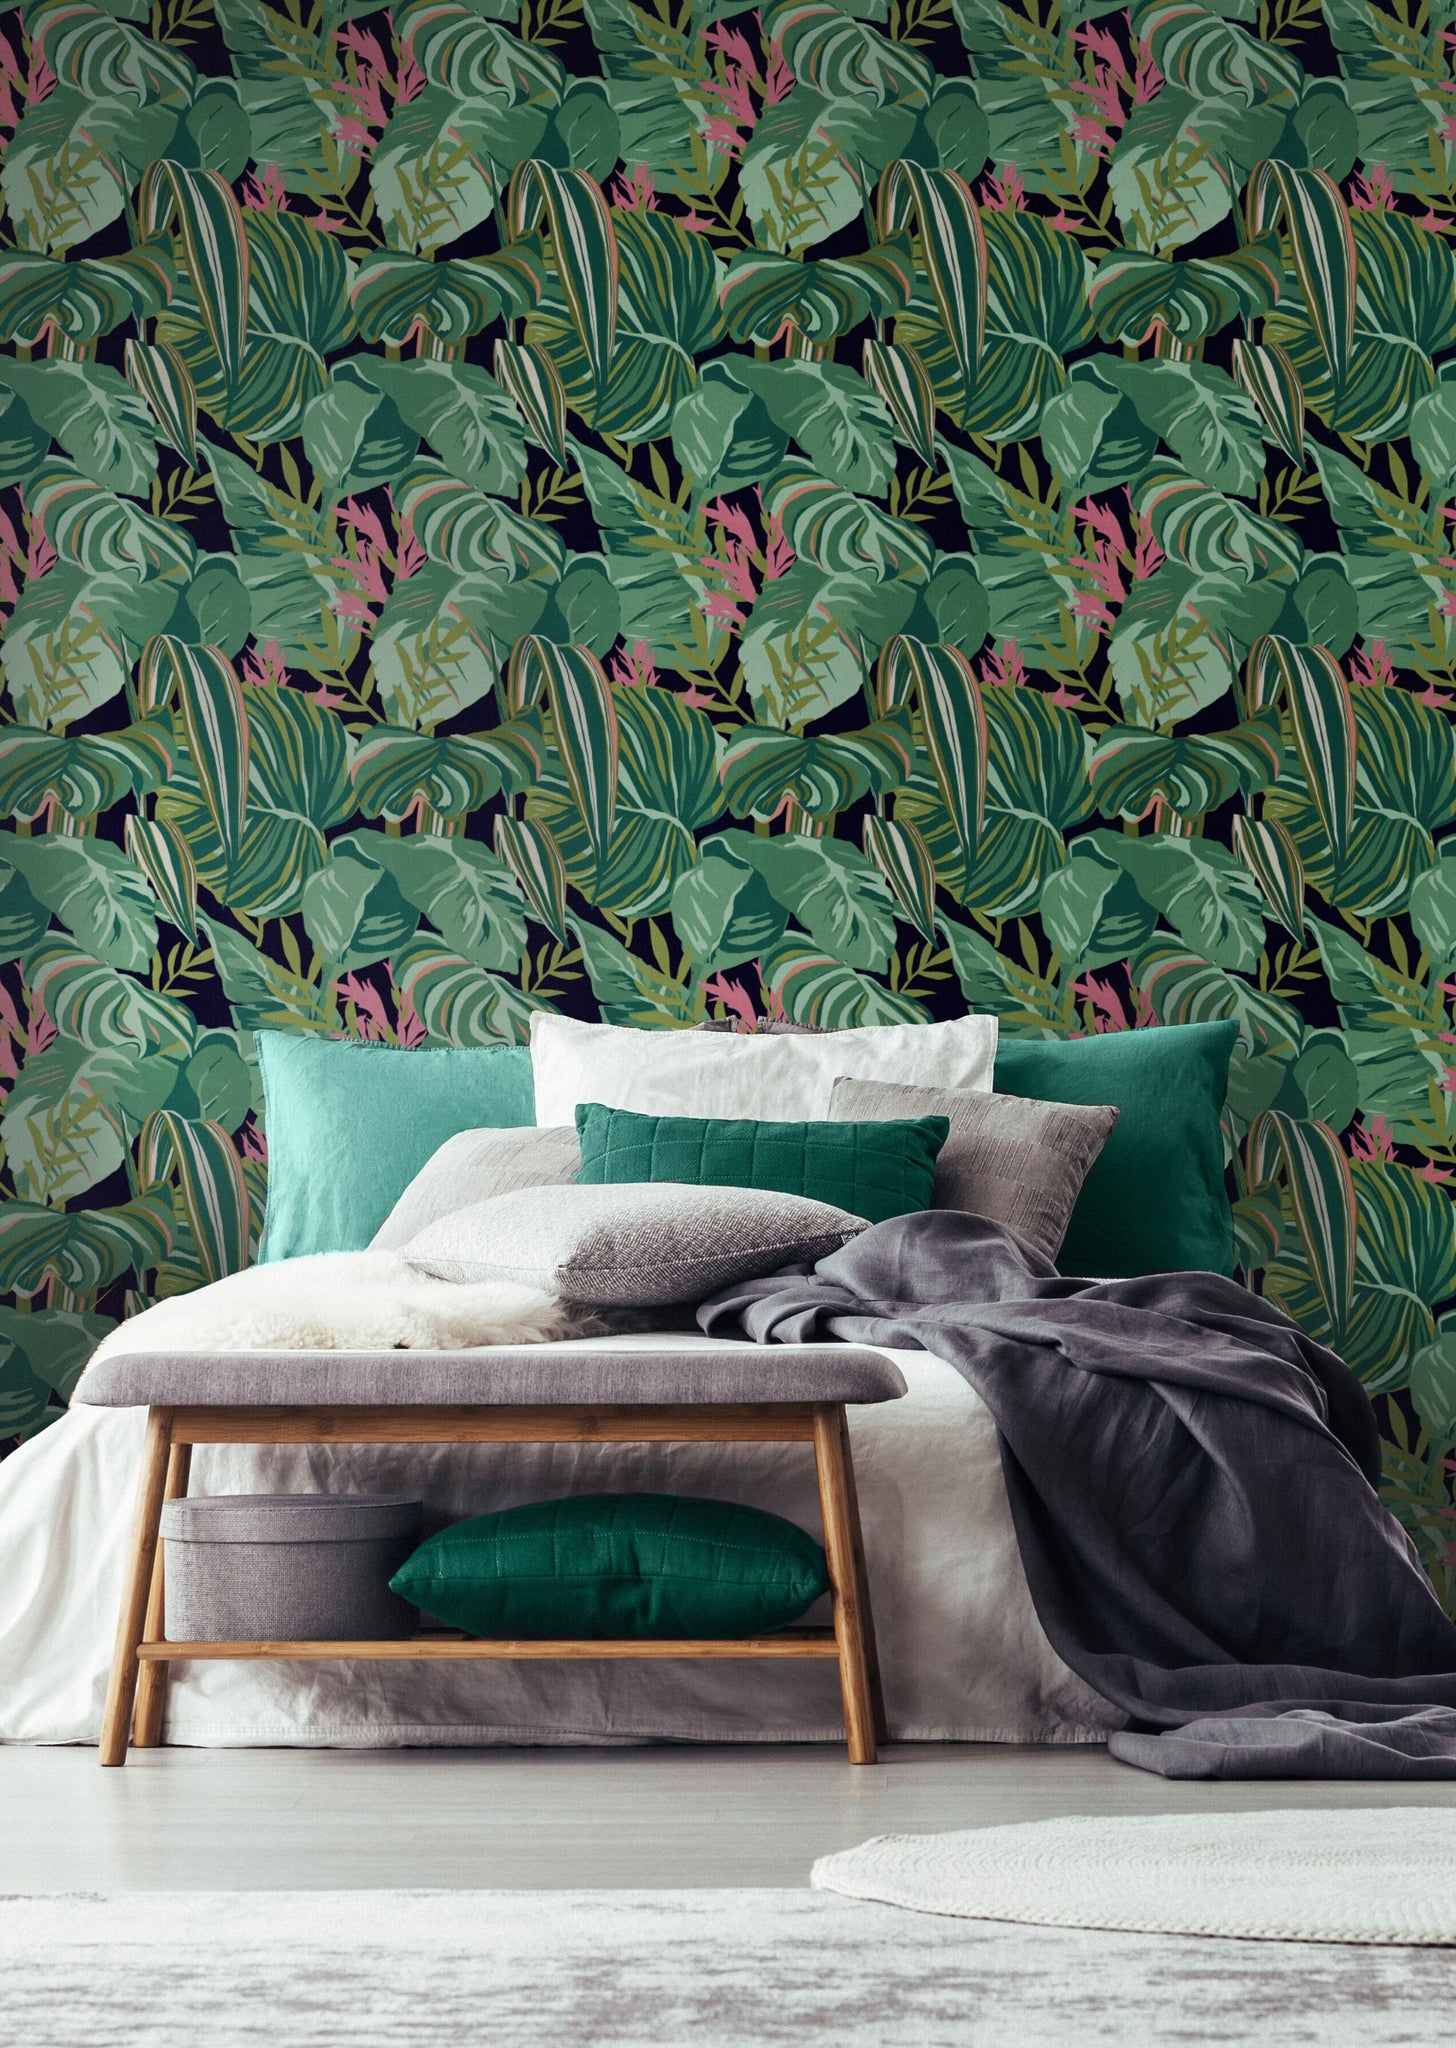 Tropical Foliage Wallpaper